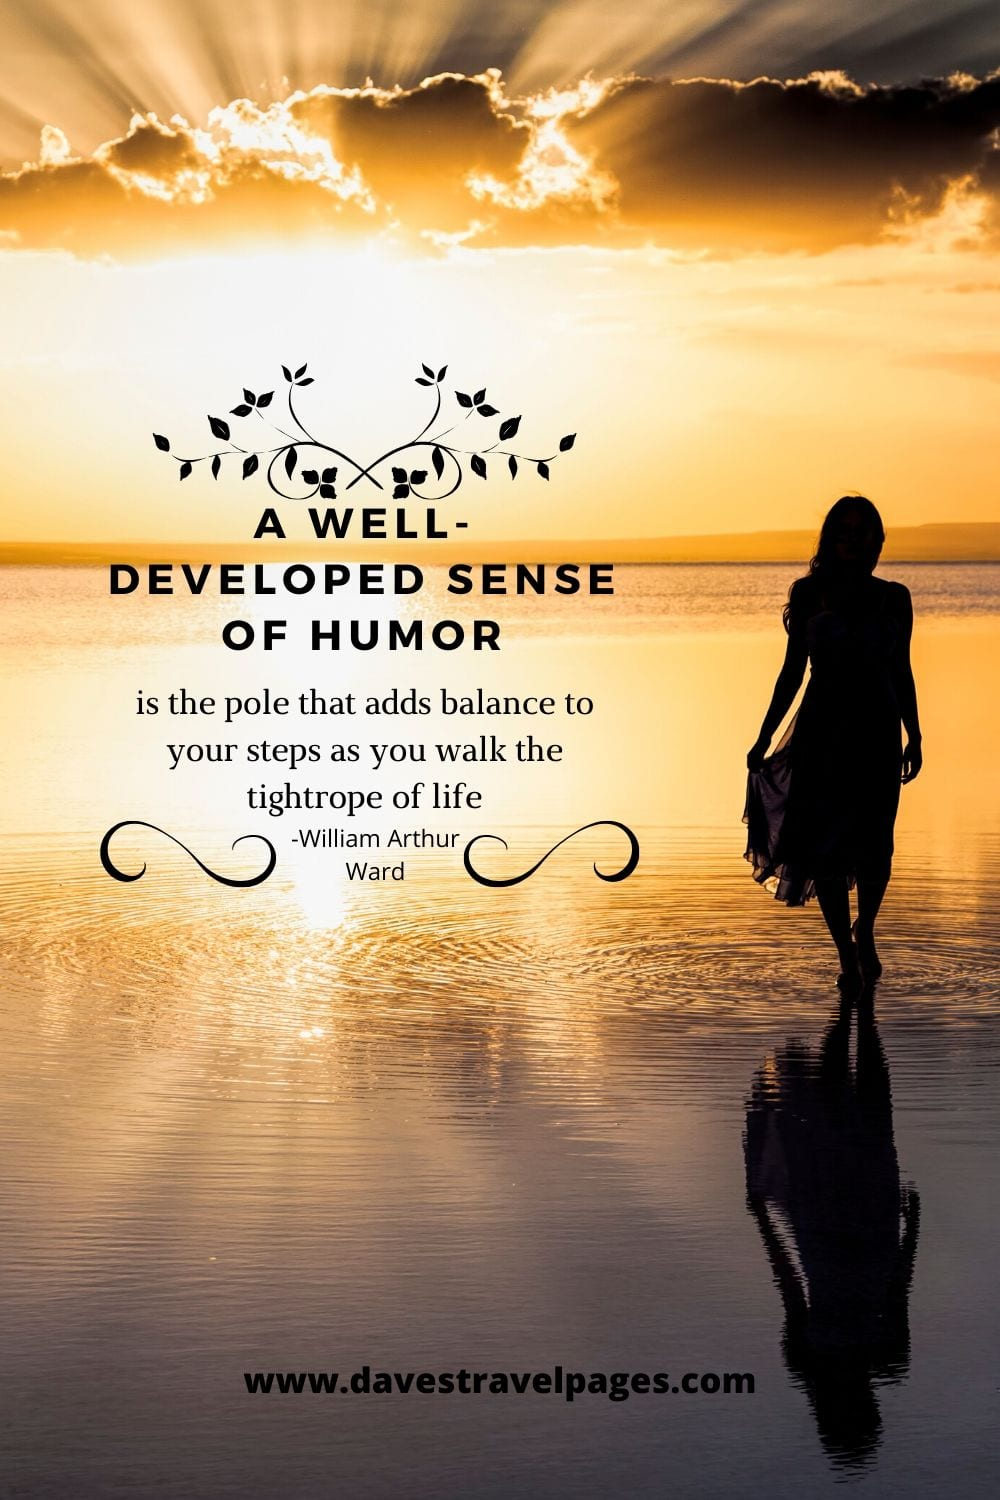 A well-developed sense of humor is the pole that adds balance to your steps as you walk the tightrope of life - William Arthur Ward